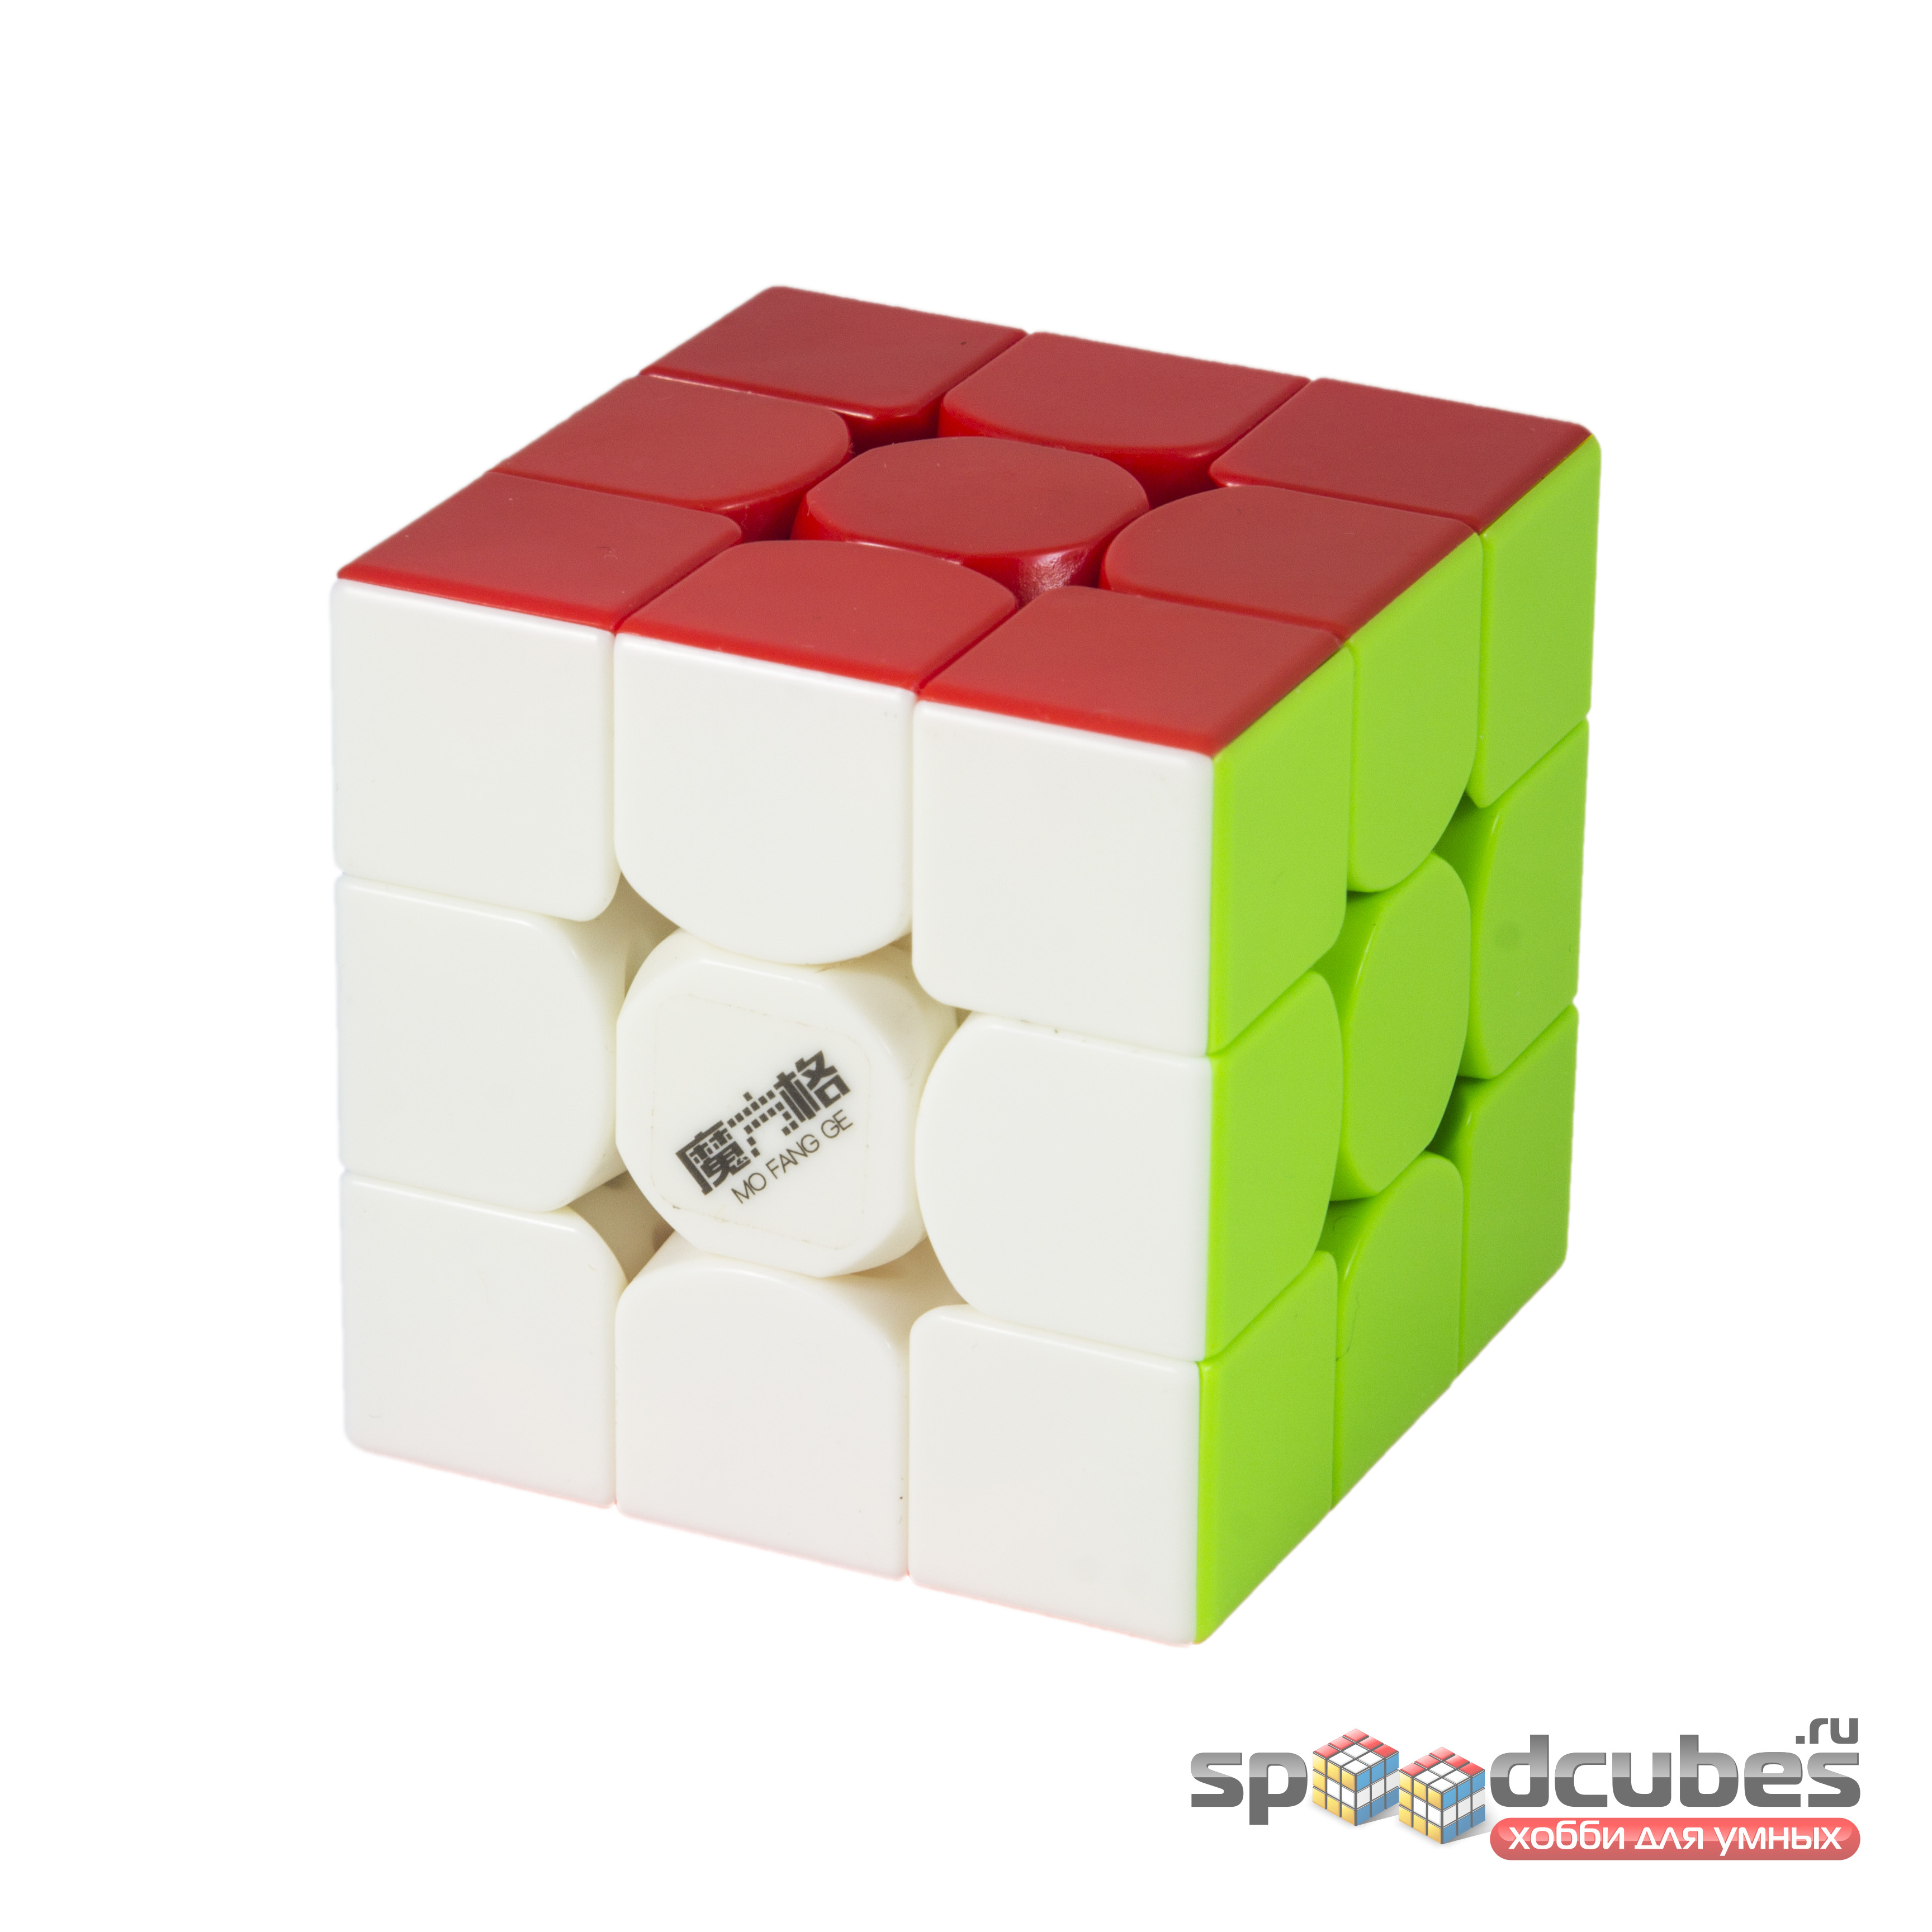 Qiyi Mofangge 3x3x3 Thinderclap V2 Color 2